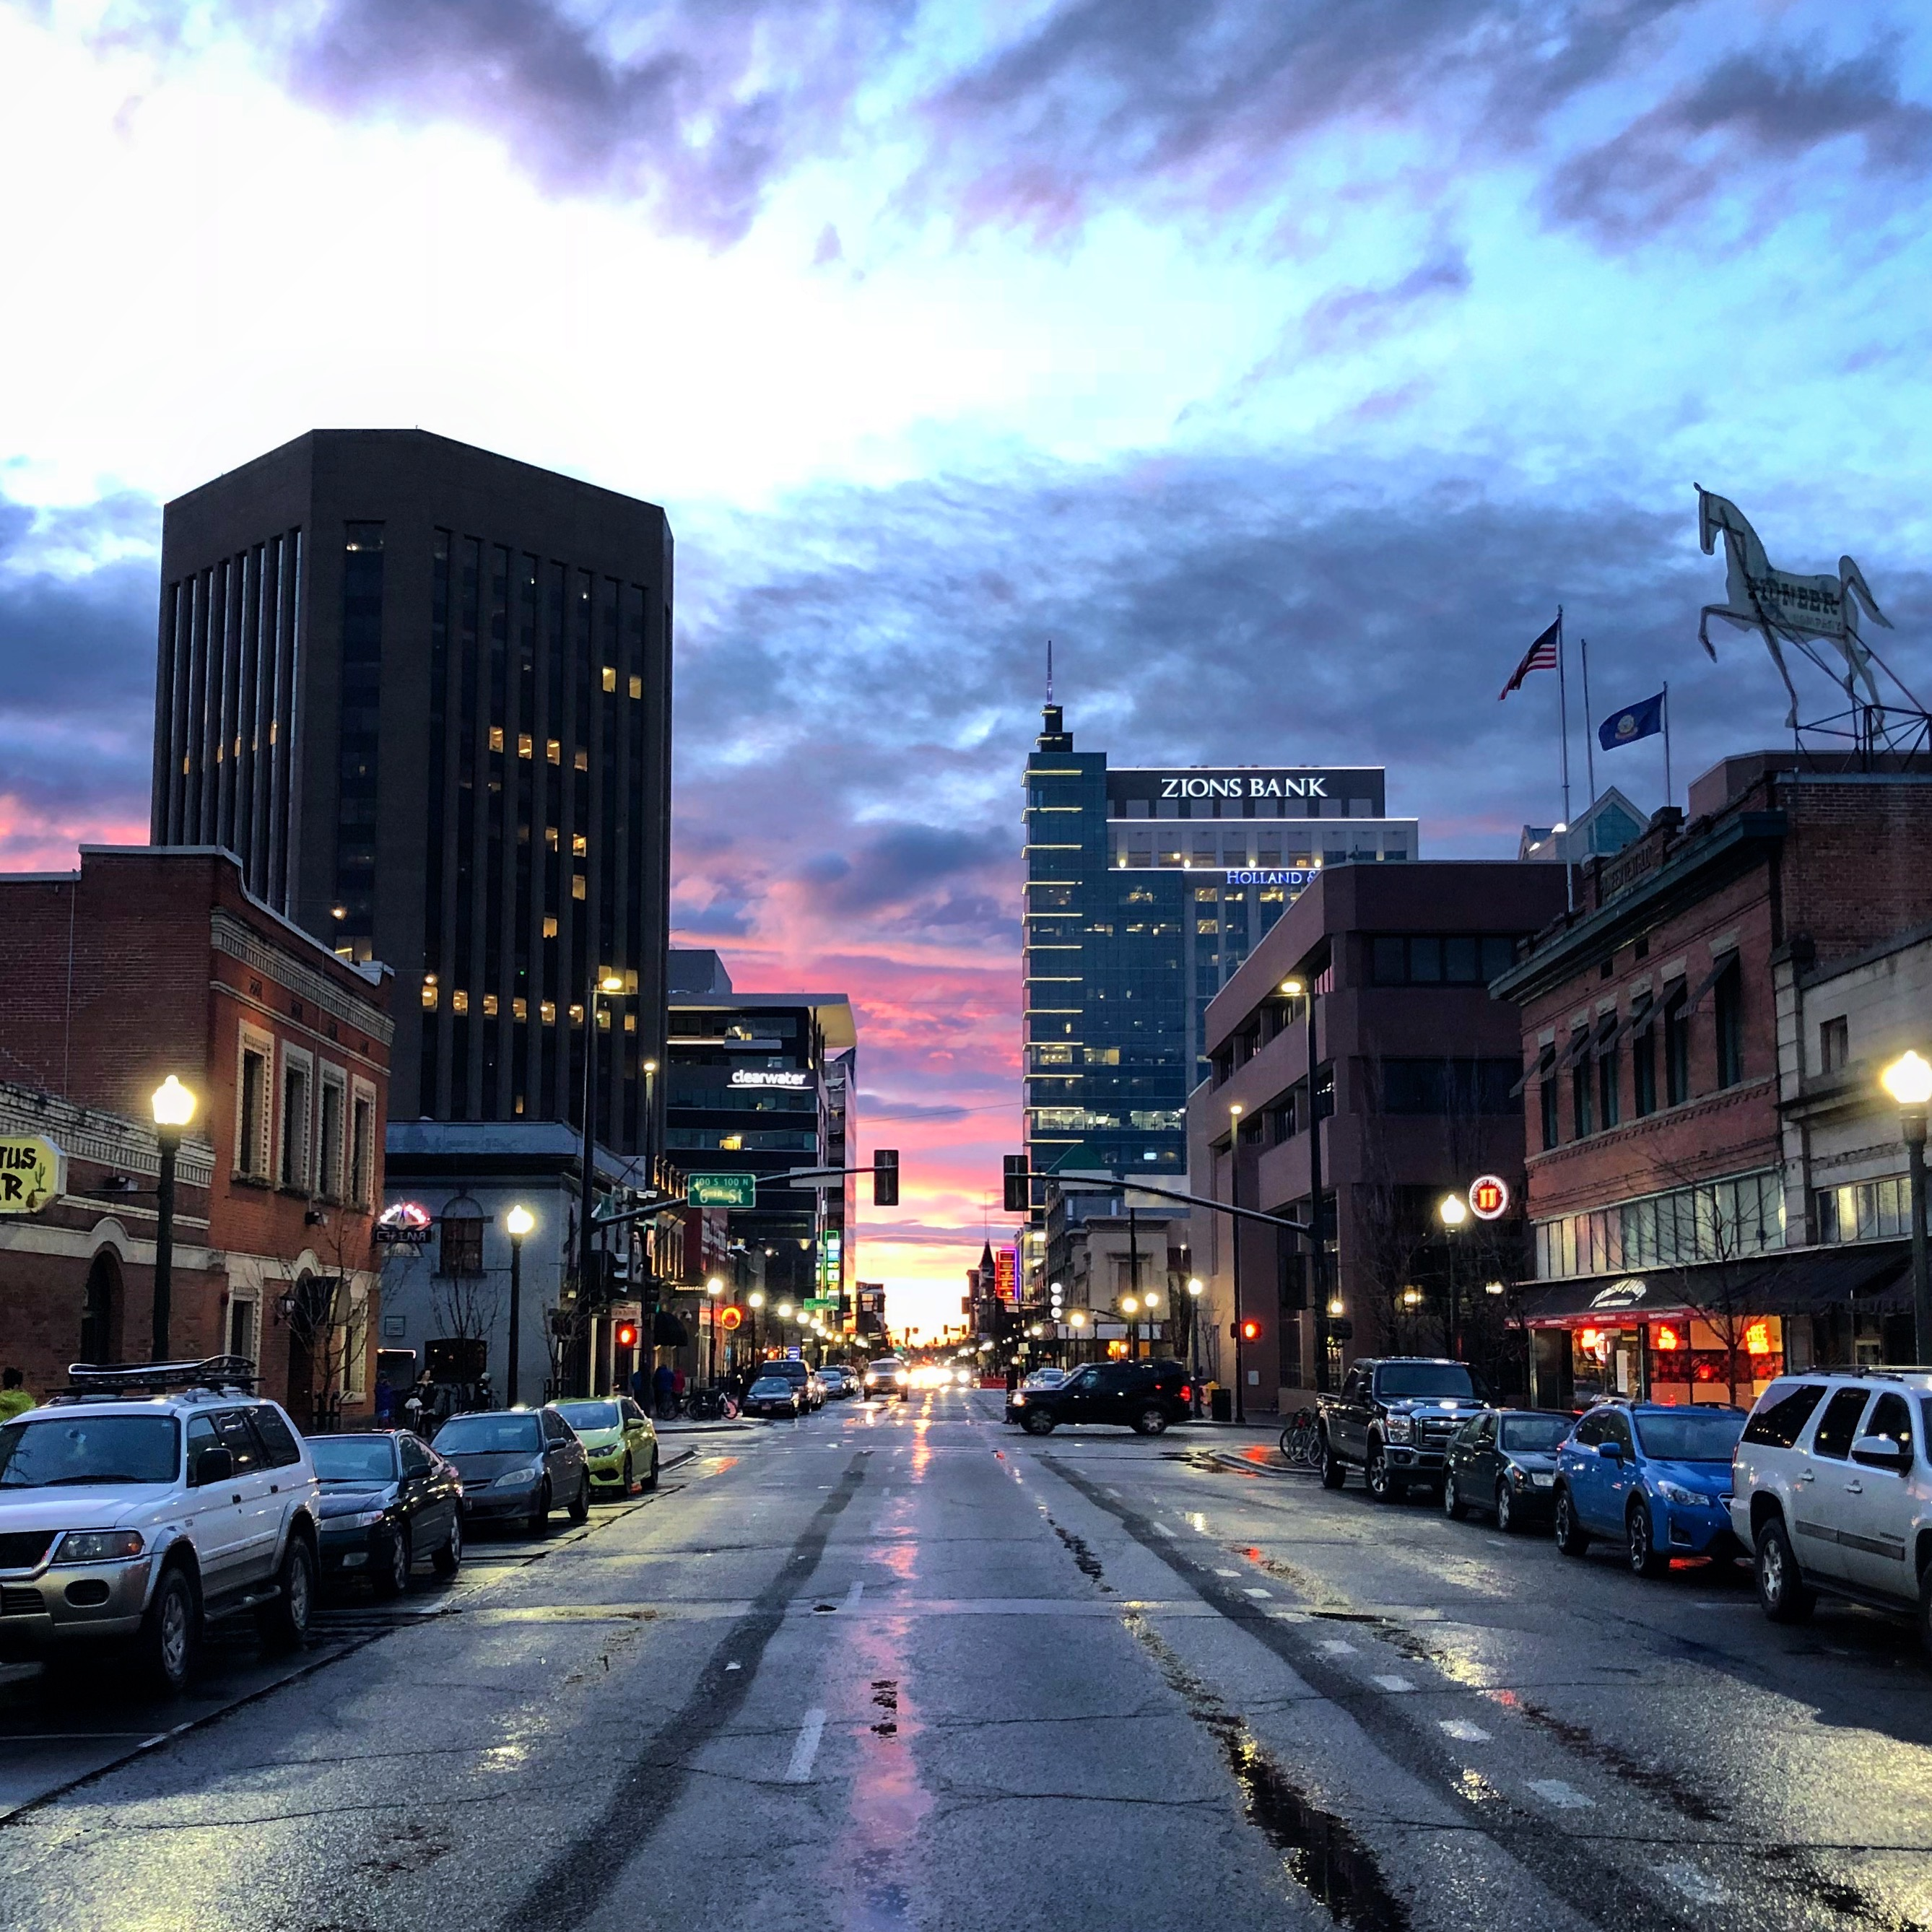 Downtown Boise after a heavy rain shower.